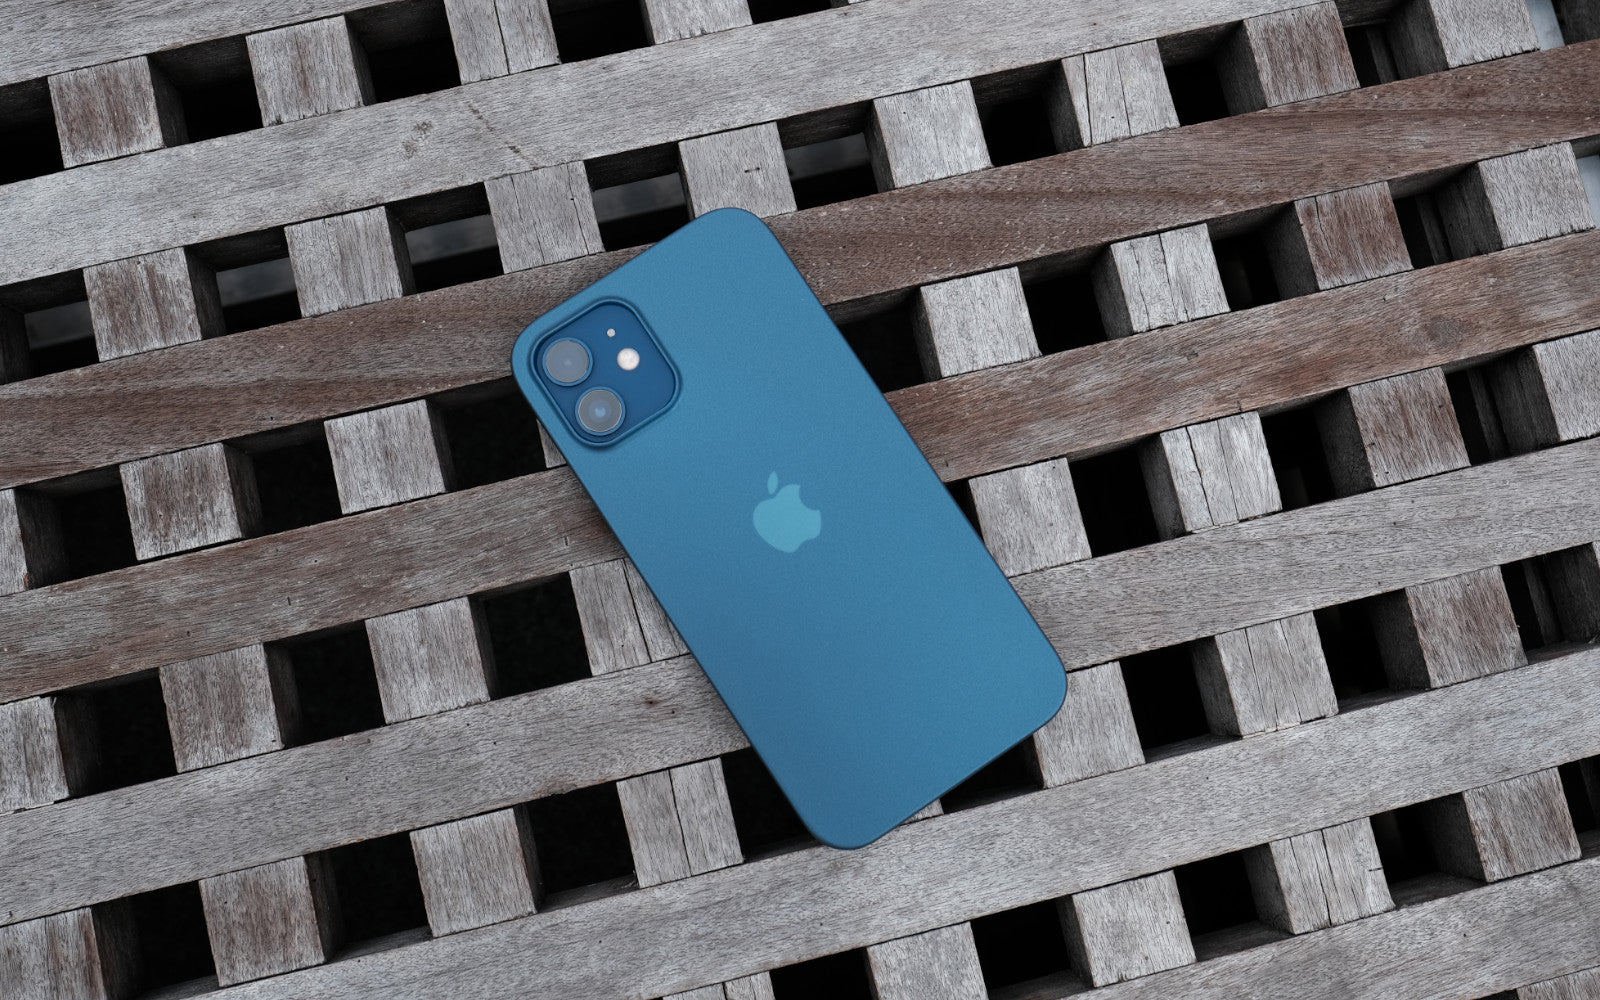 Bare Naked Ultra Thin Case for iPhone 12 and iPhone 12 mini - Branding-Free